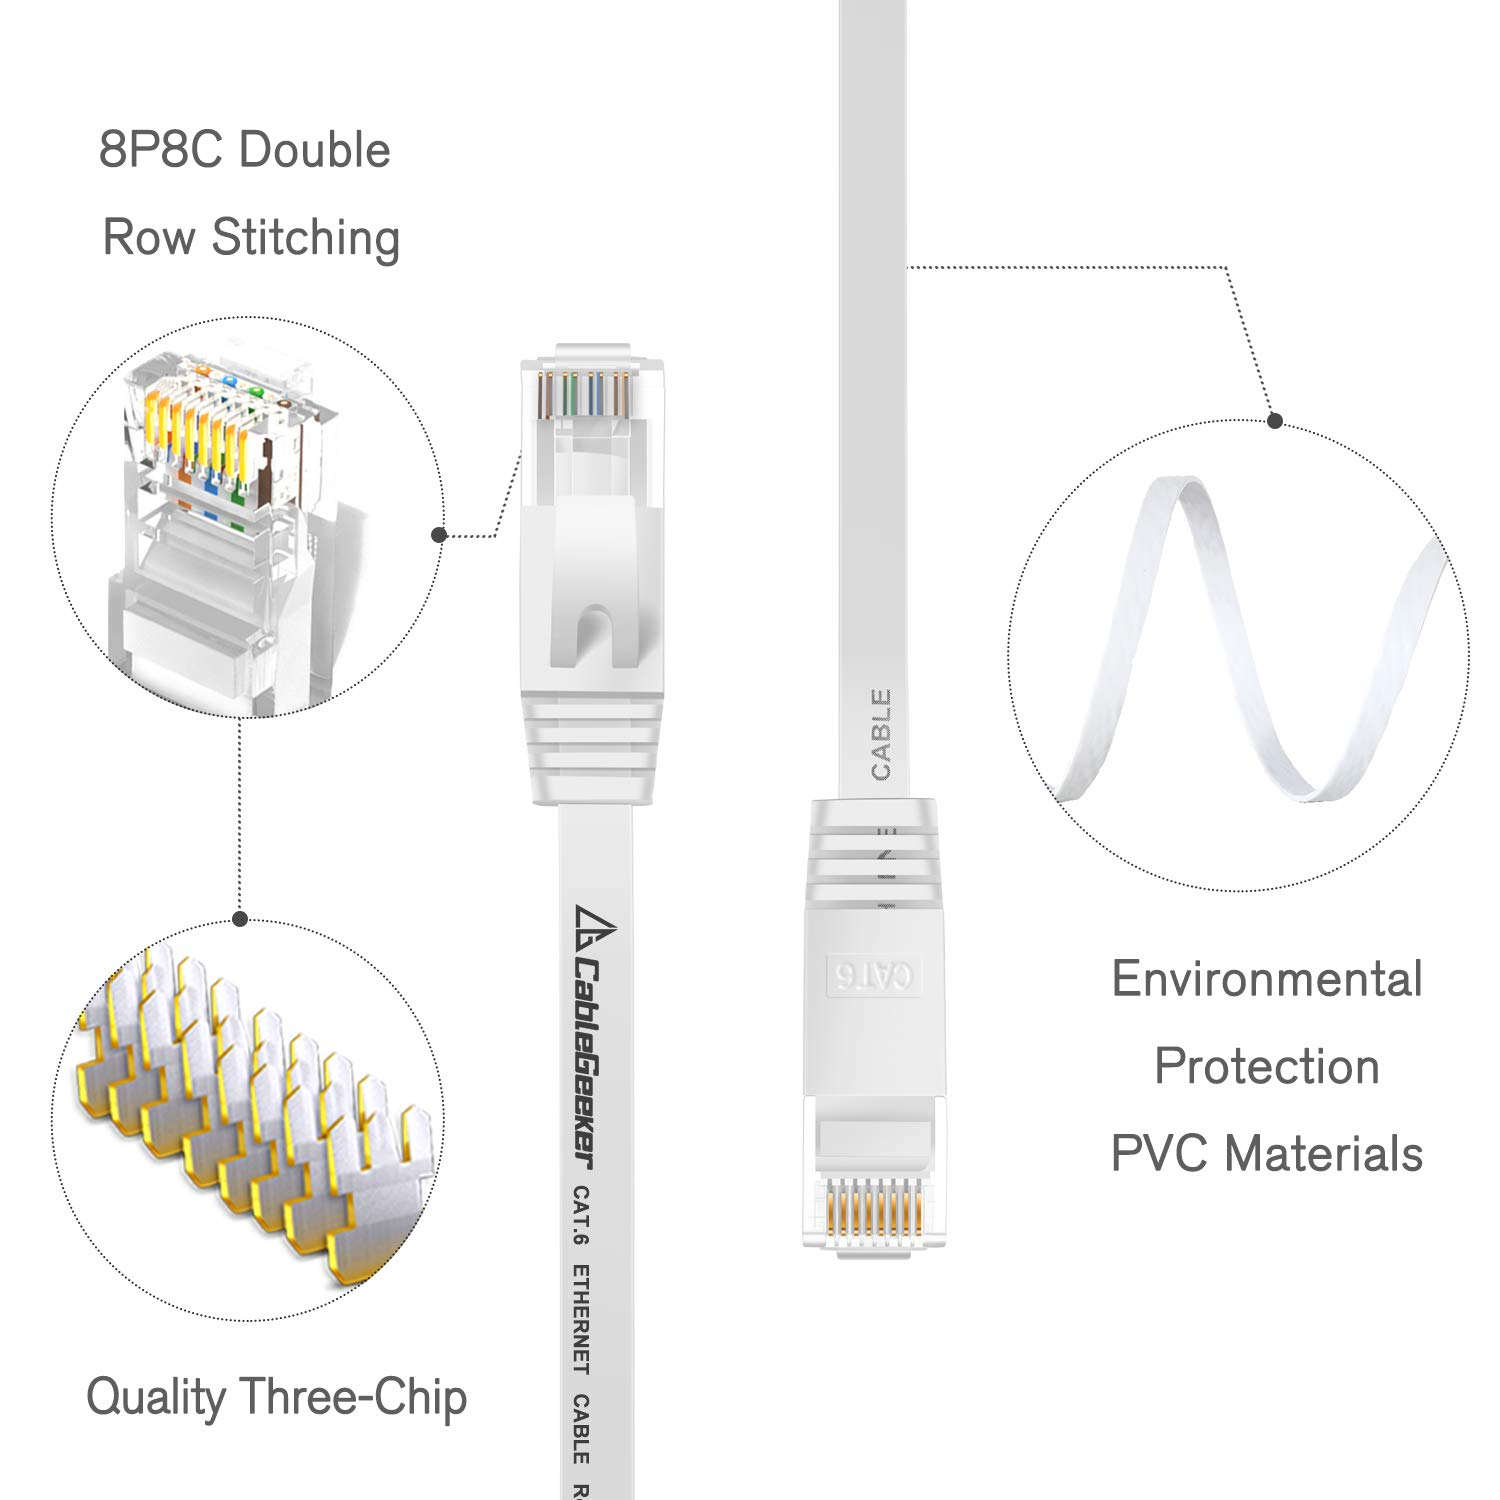 Cat 6 Ethernet Cable 100 Ft At A Cat5e Price But Higher Networking Guide 5 Wiring Scheme Bandwidth Flat Internet Network Cables Cat6 Patch Short Computer